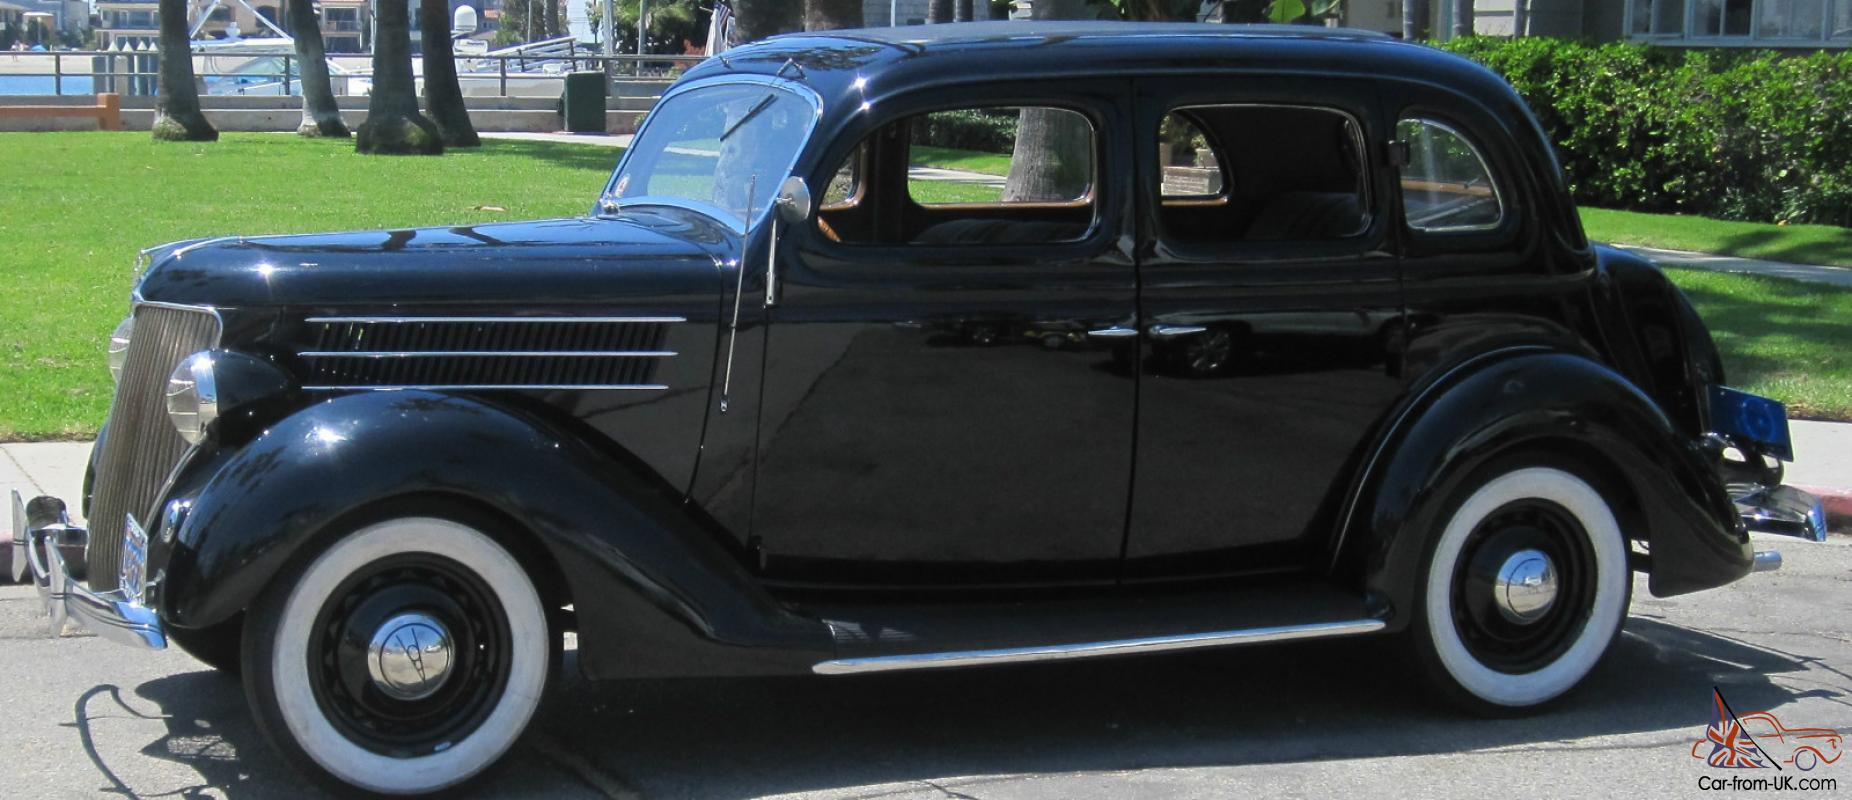 1936 ford sedan 4 door with a rebuilt 1948 ford flathead